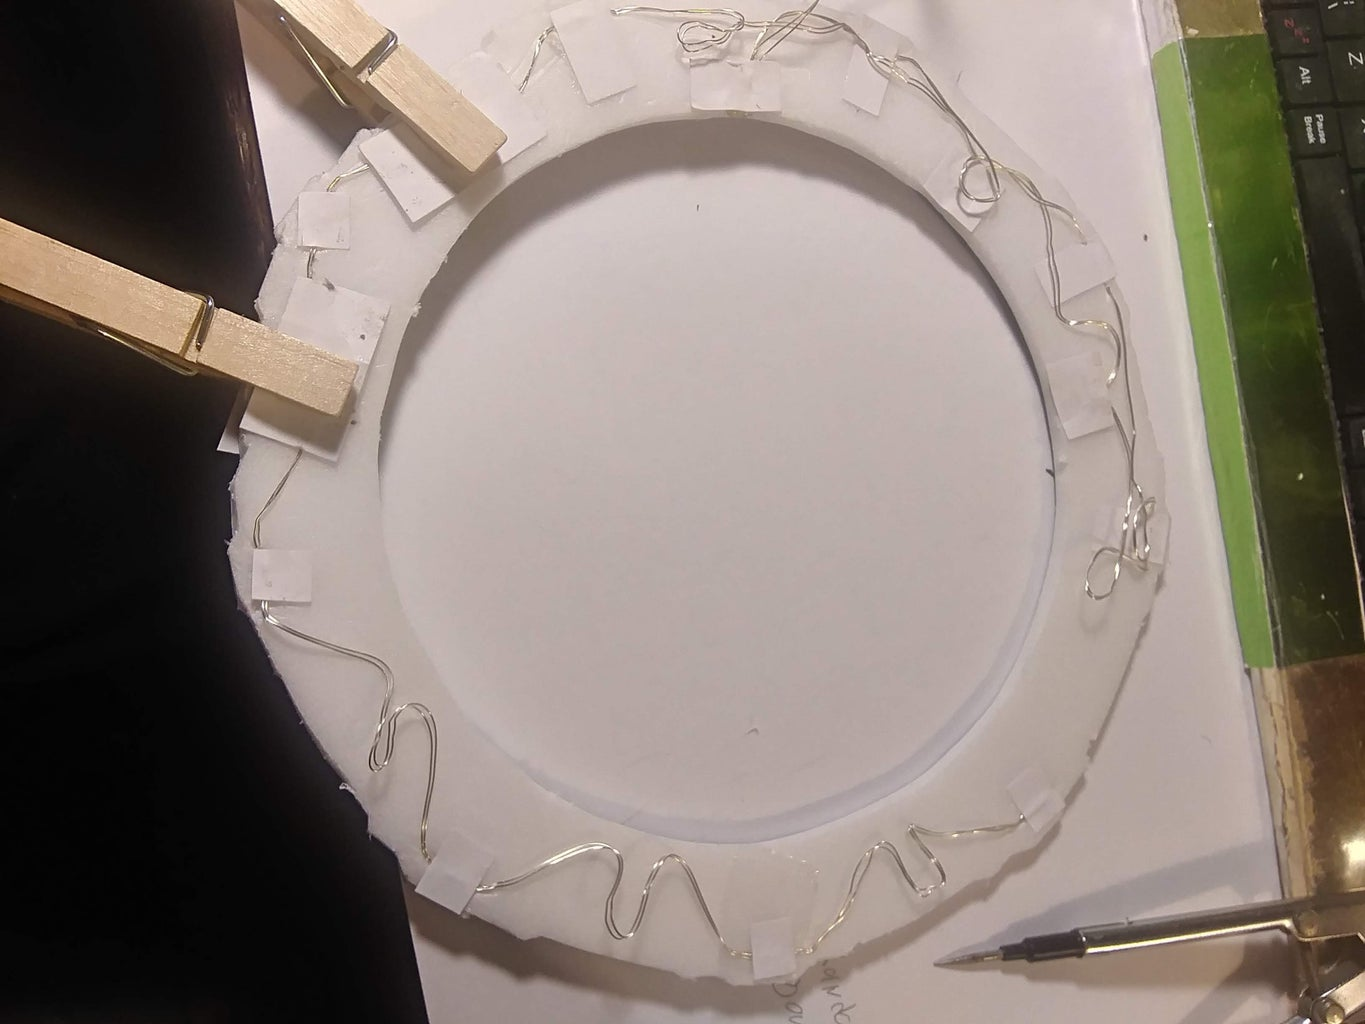 Adding LEDS to the Ring